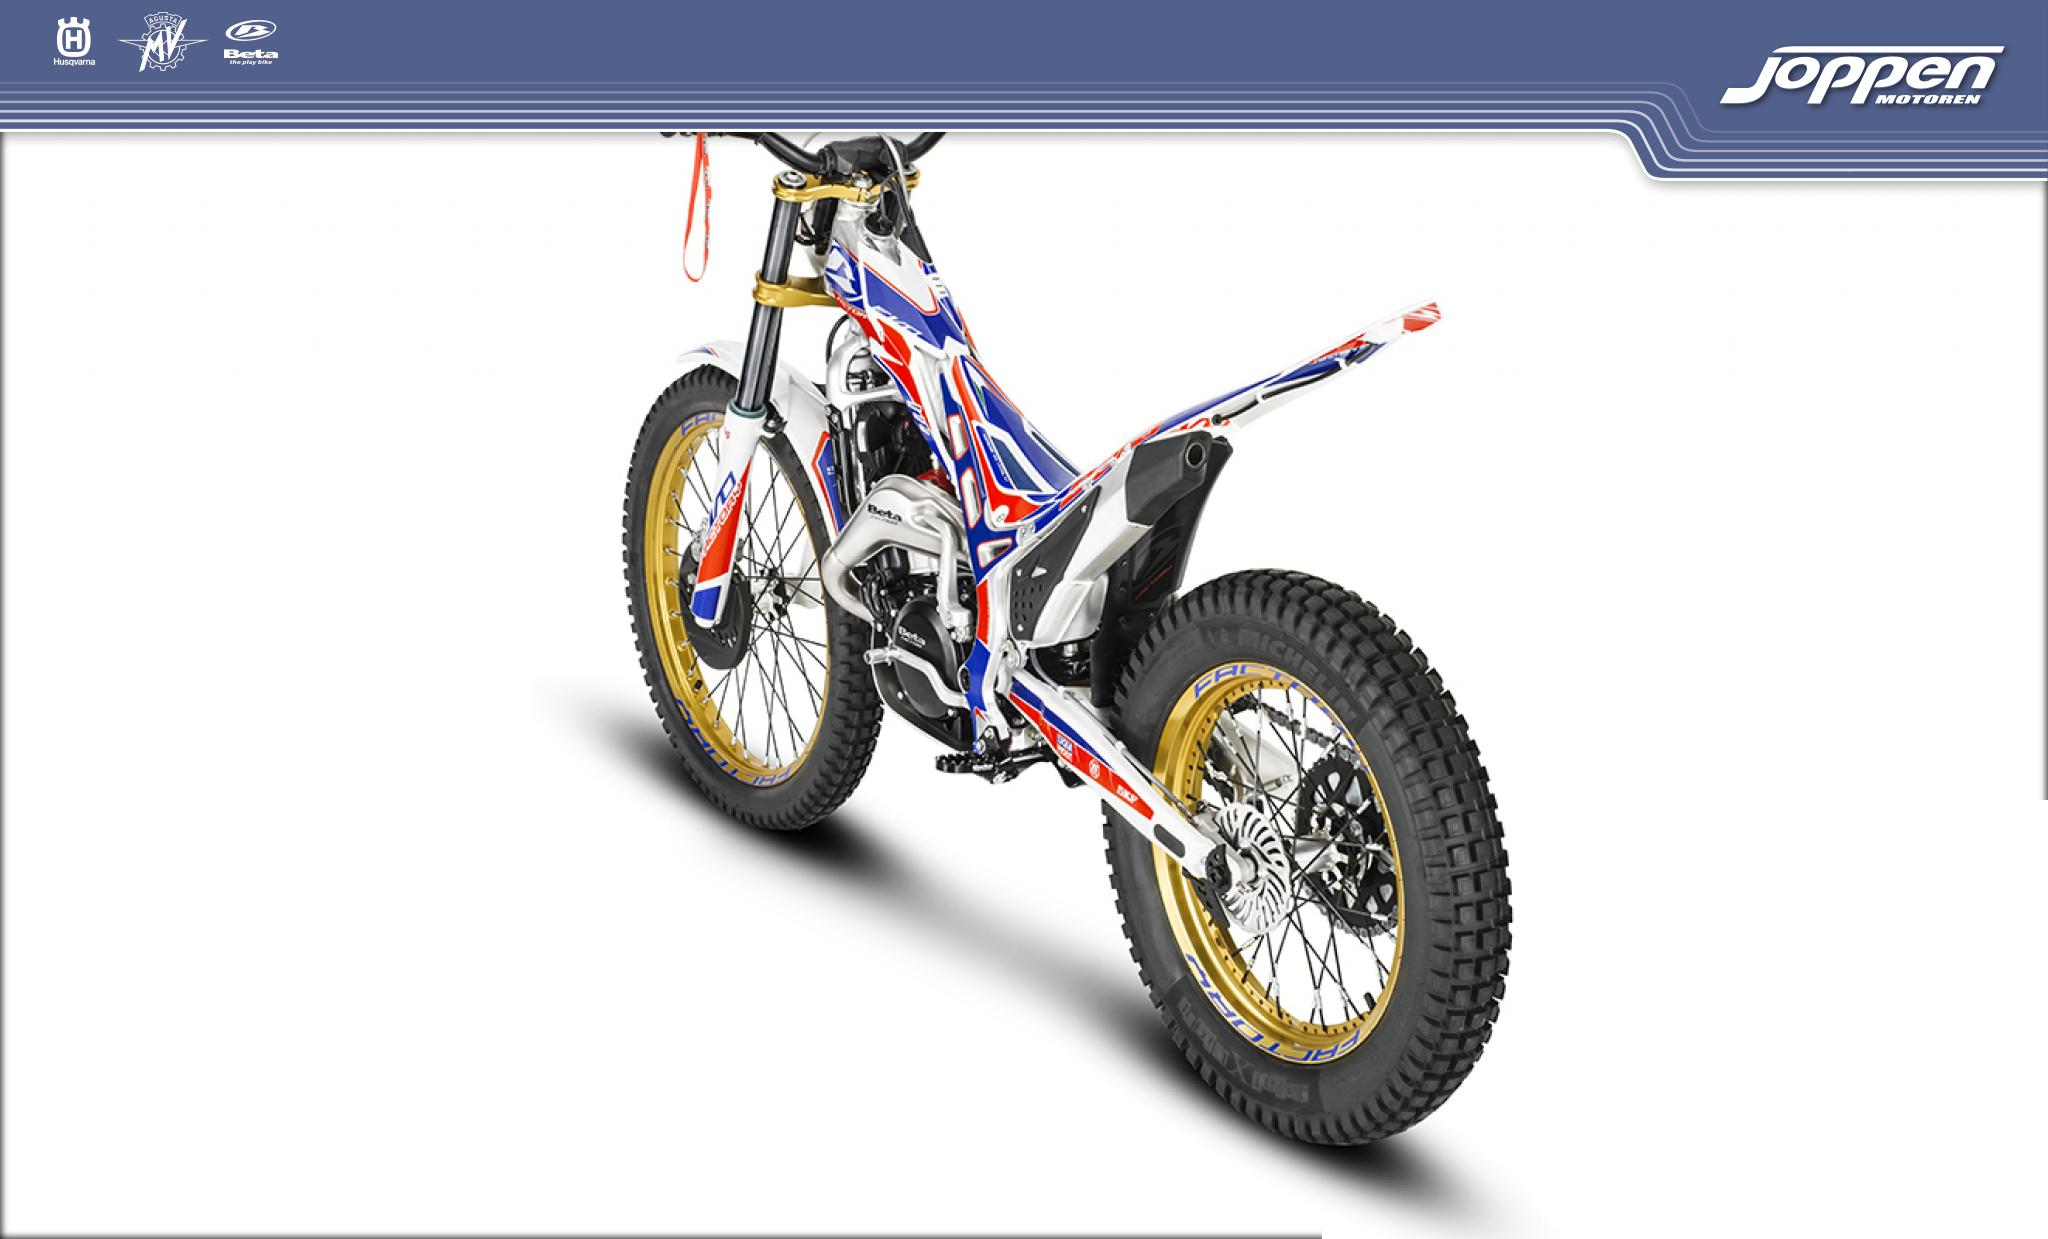 Beta EVO 250 2T Factory 2020 blauw/rood/wit - Off road